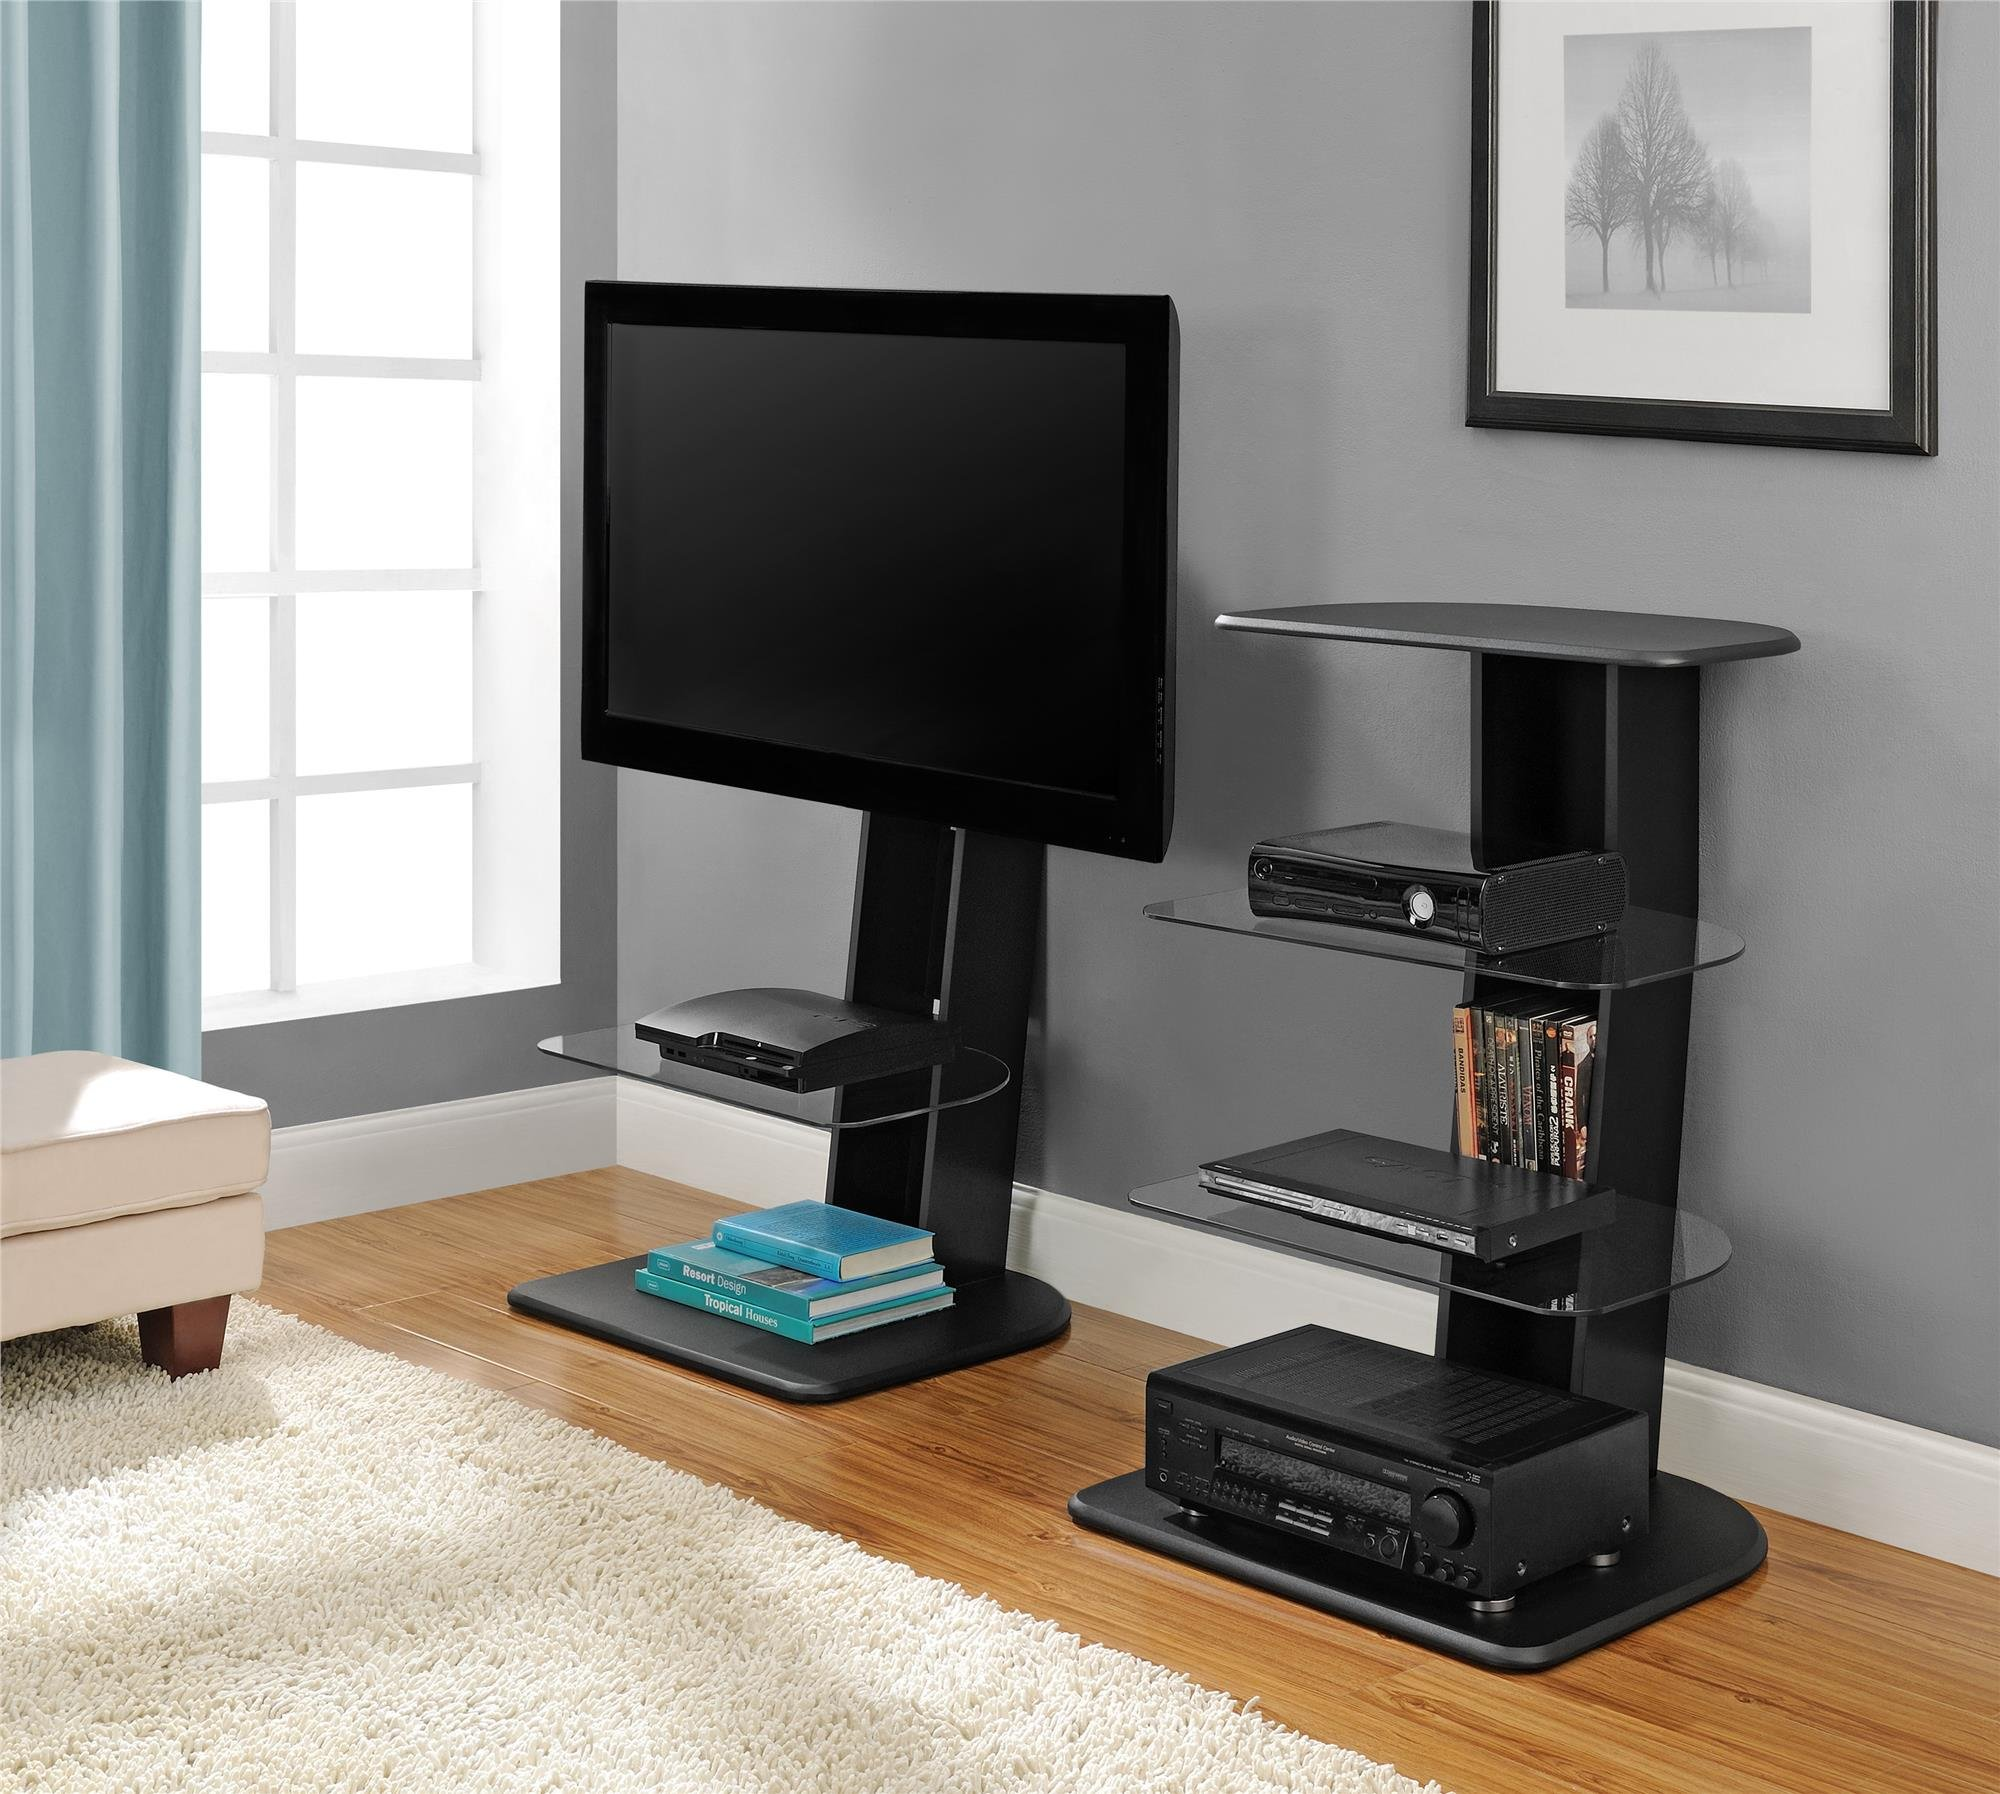 Ameriwood Home Galaxy TV Stand with Mount for TVs up to 50'', Black by Ameriwood Home (Image #5)